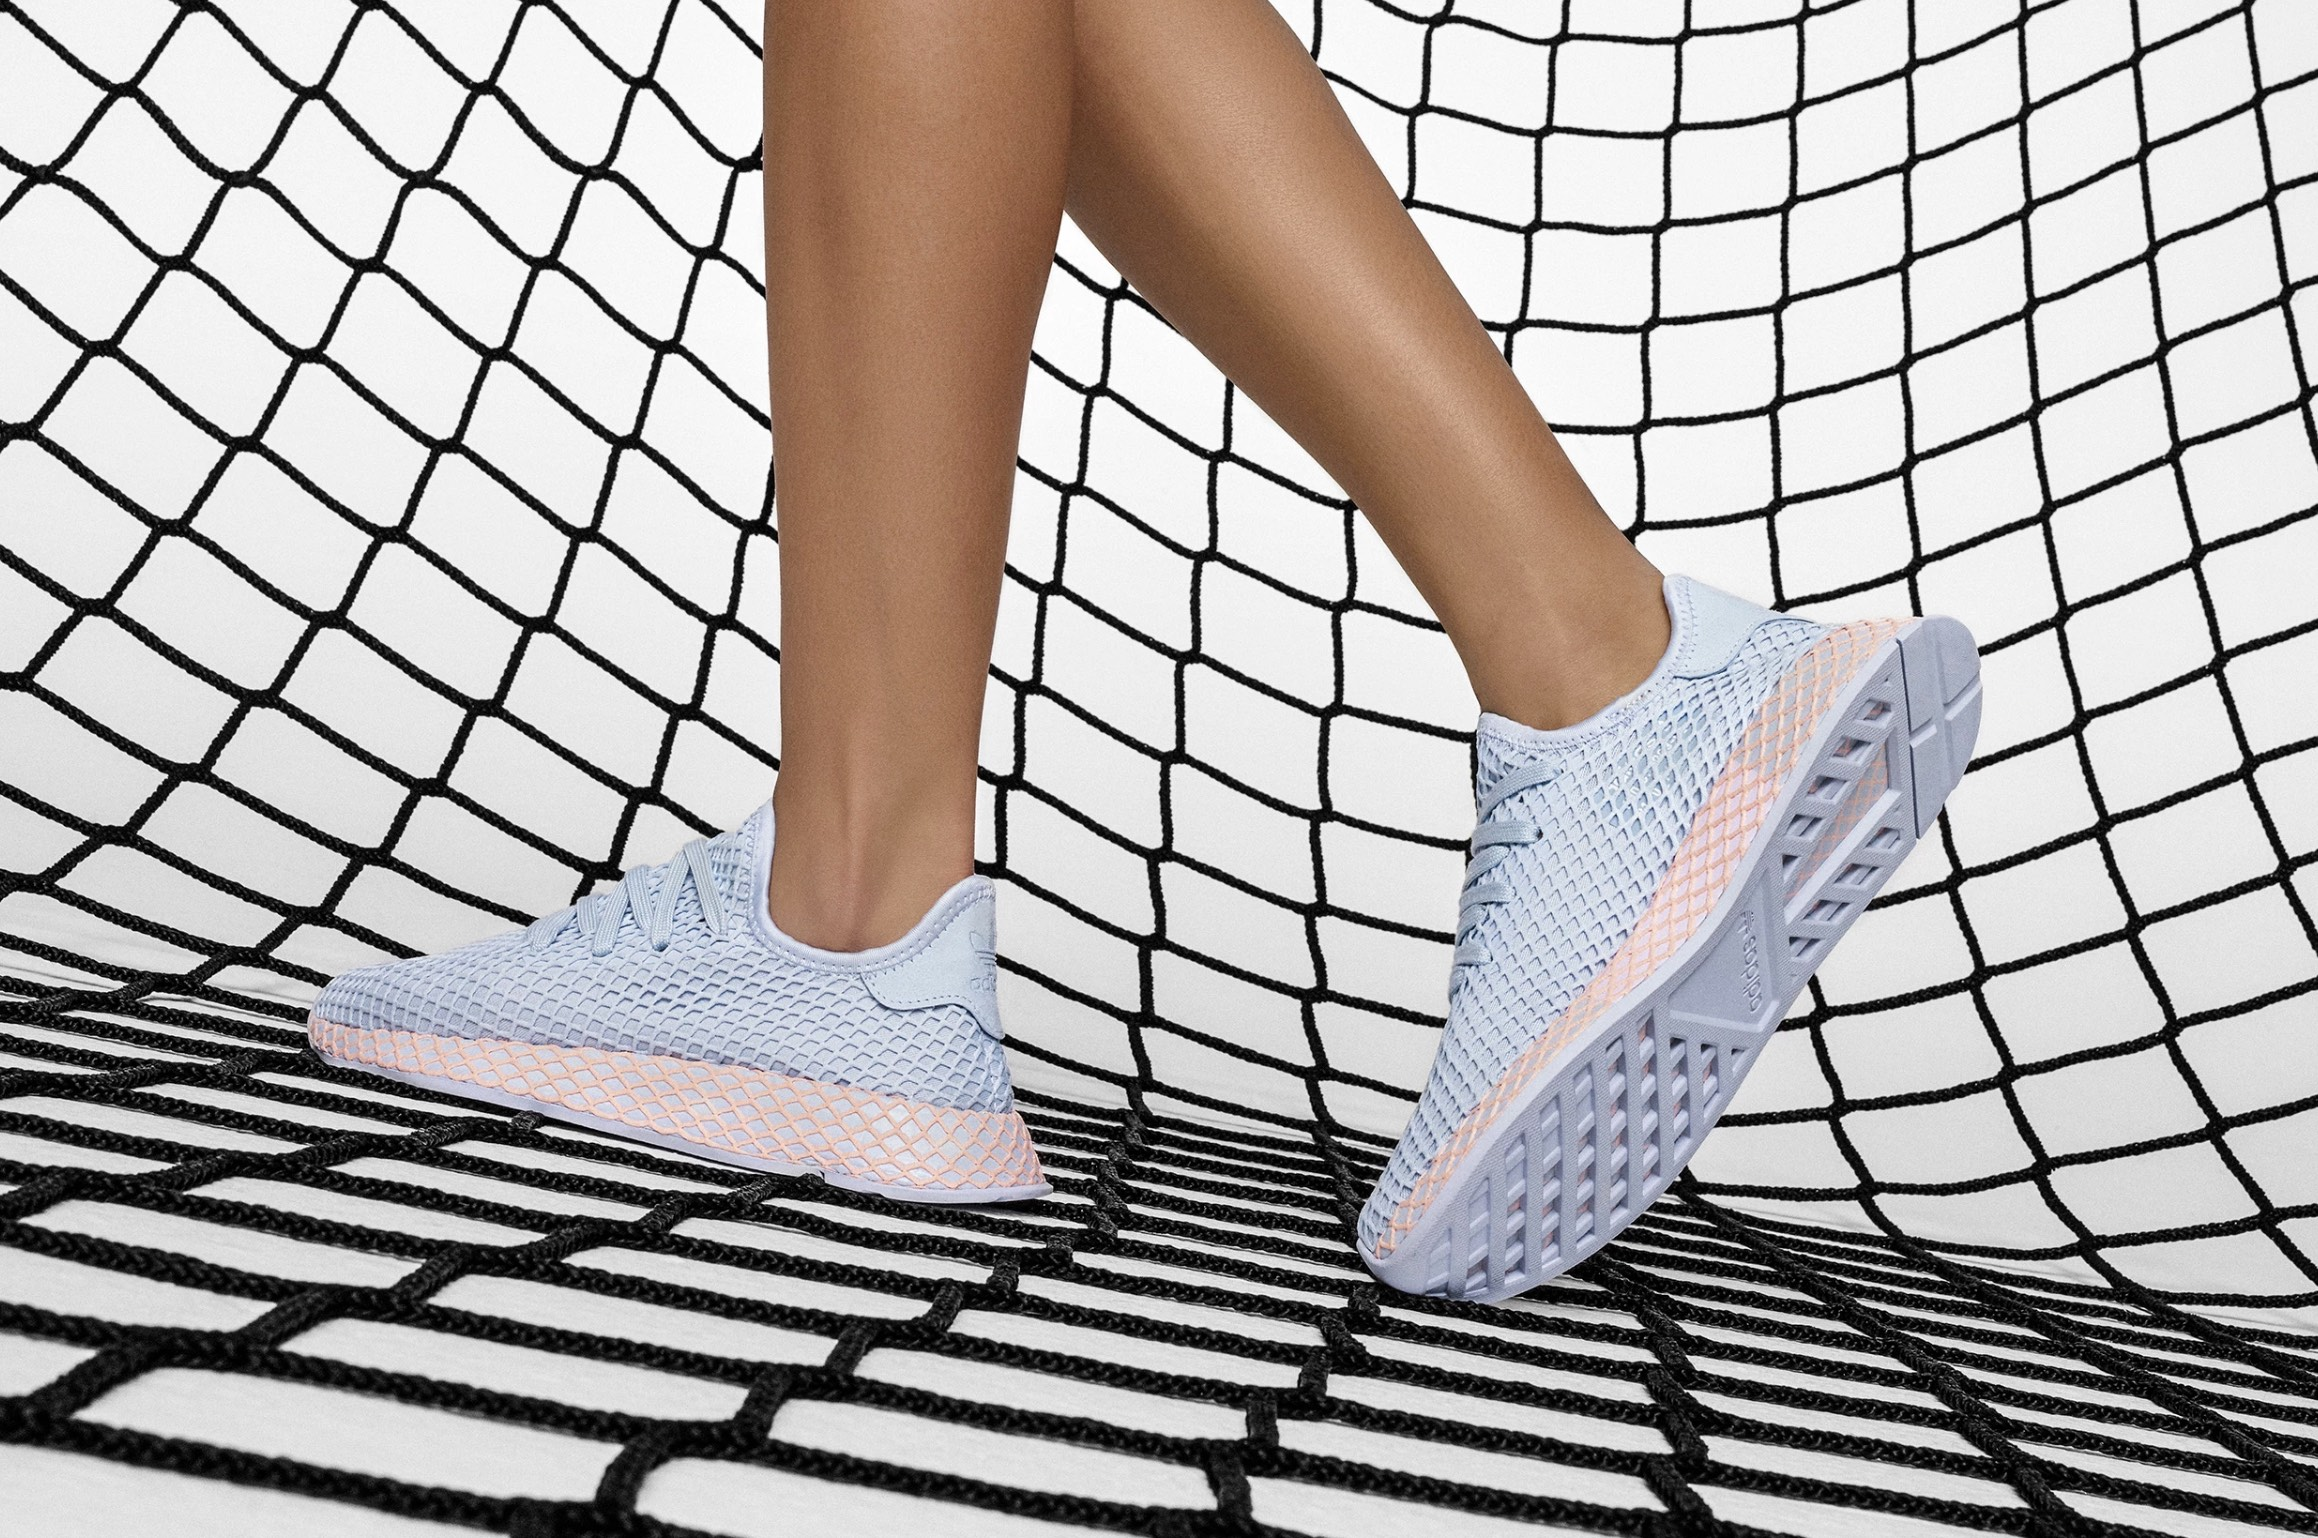 da5590309f2 Introducing Five New adidas Originals Deerupt Womens Colourways ...